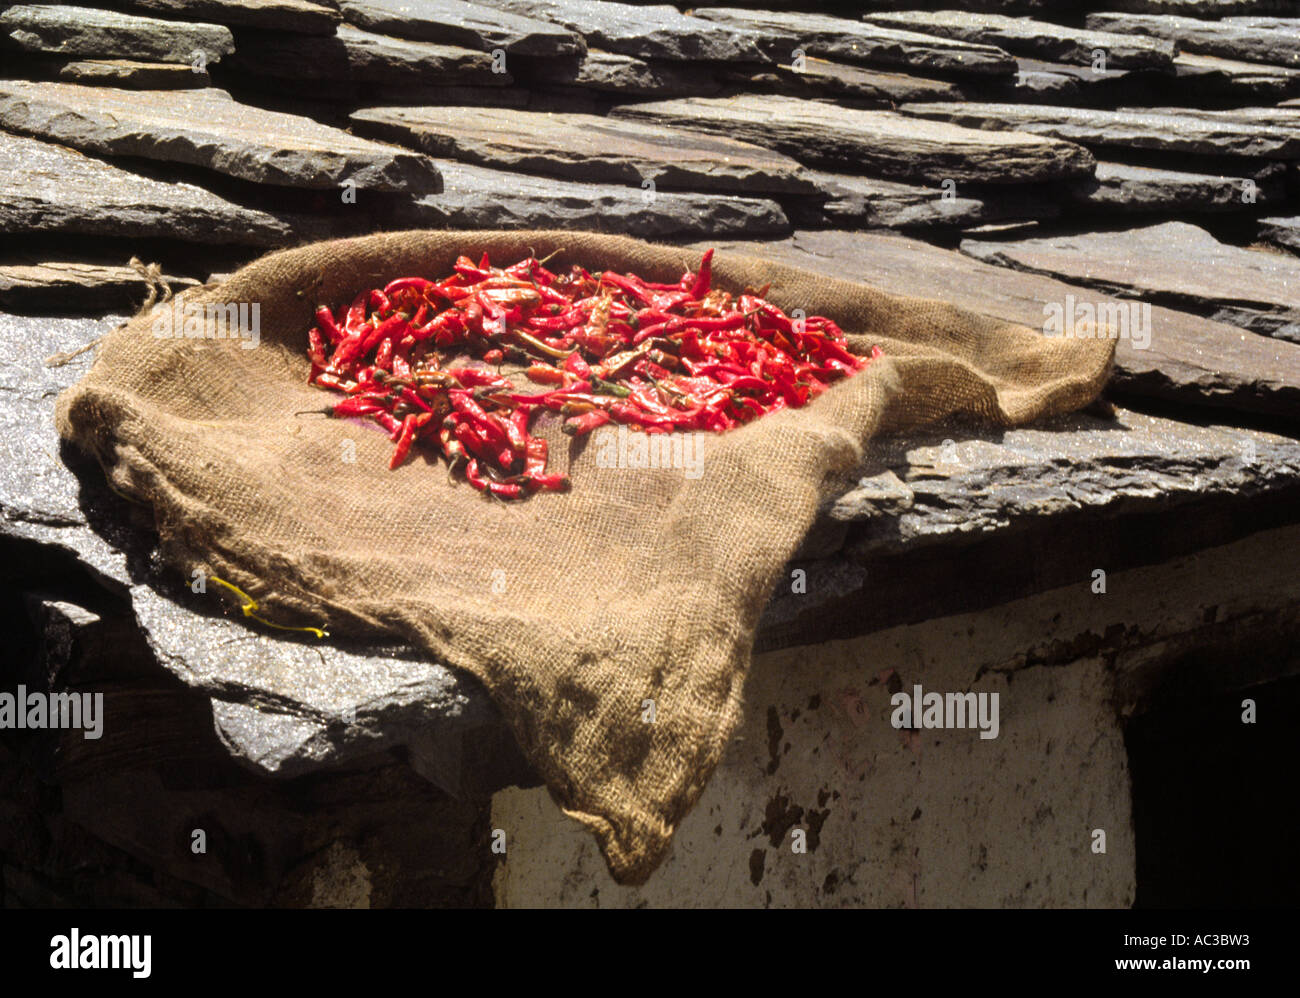 Chilis drying on roof - Stock Image